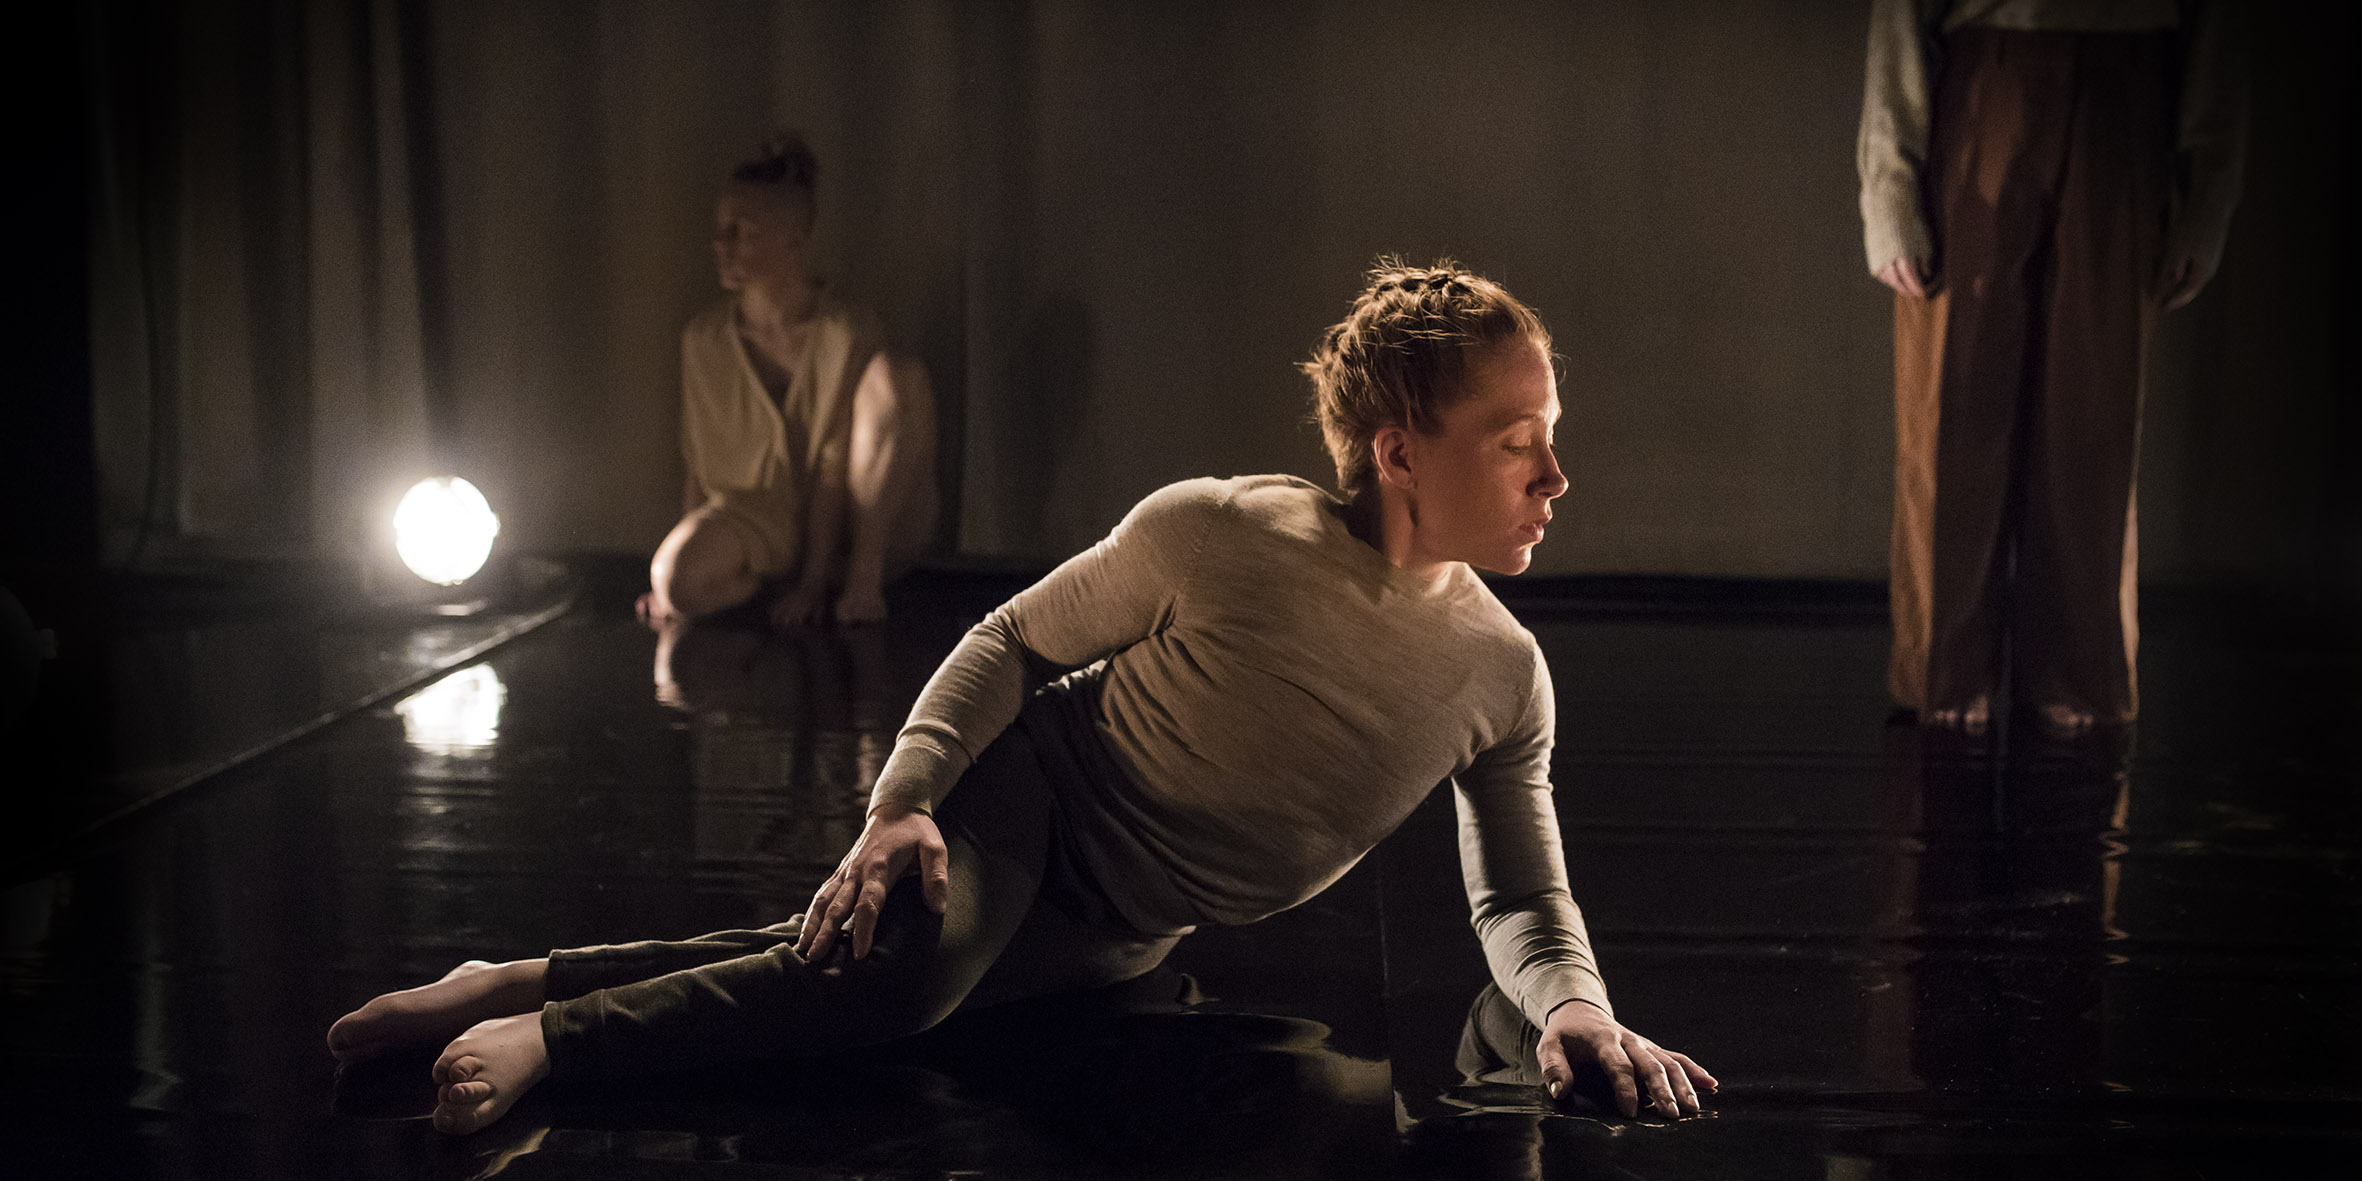 In the foreground lies a dancer with her legs to the left and her upper body to the right. She has braided red hair and are looking down at the floor. In the background to the left sits a dance out of focus next to a bright spotlight. In the background to the right we see the legs and parts of the arms of a person. The picture is dark and light is reflected on the shiny floor. Photo: Polina Ulianova